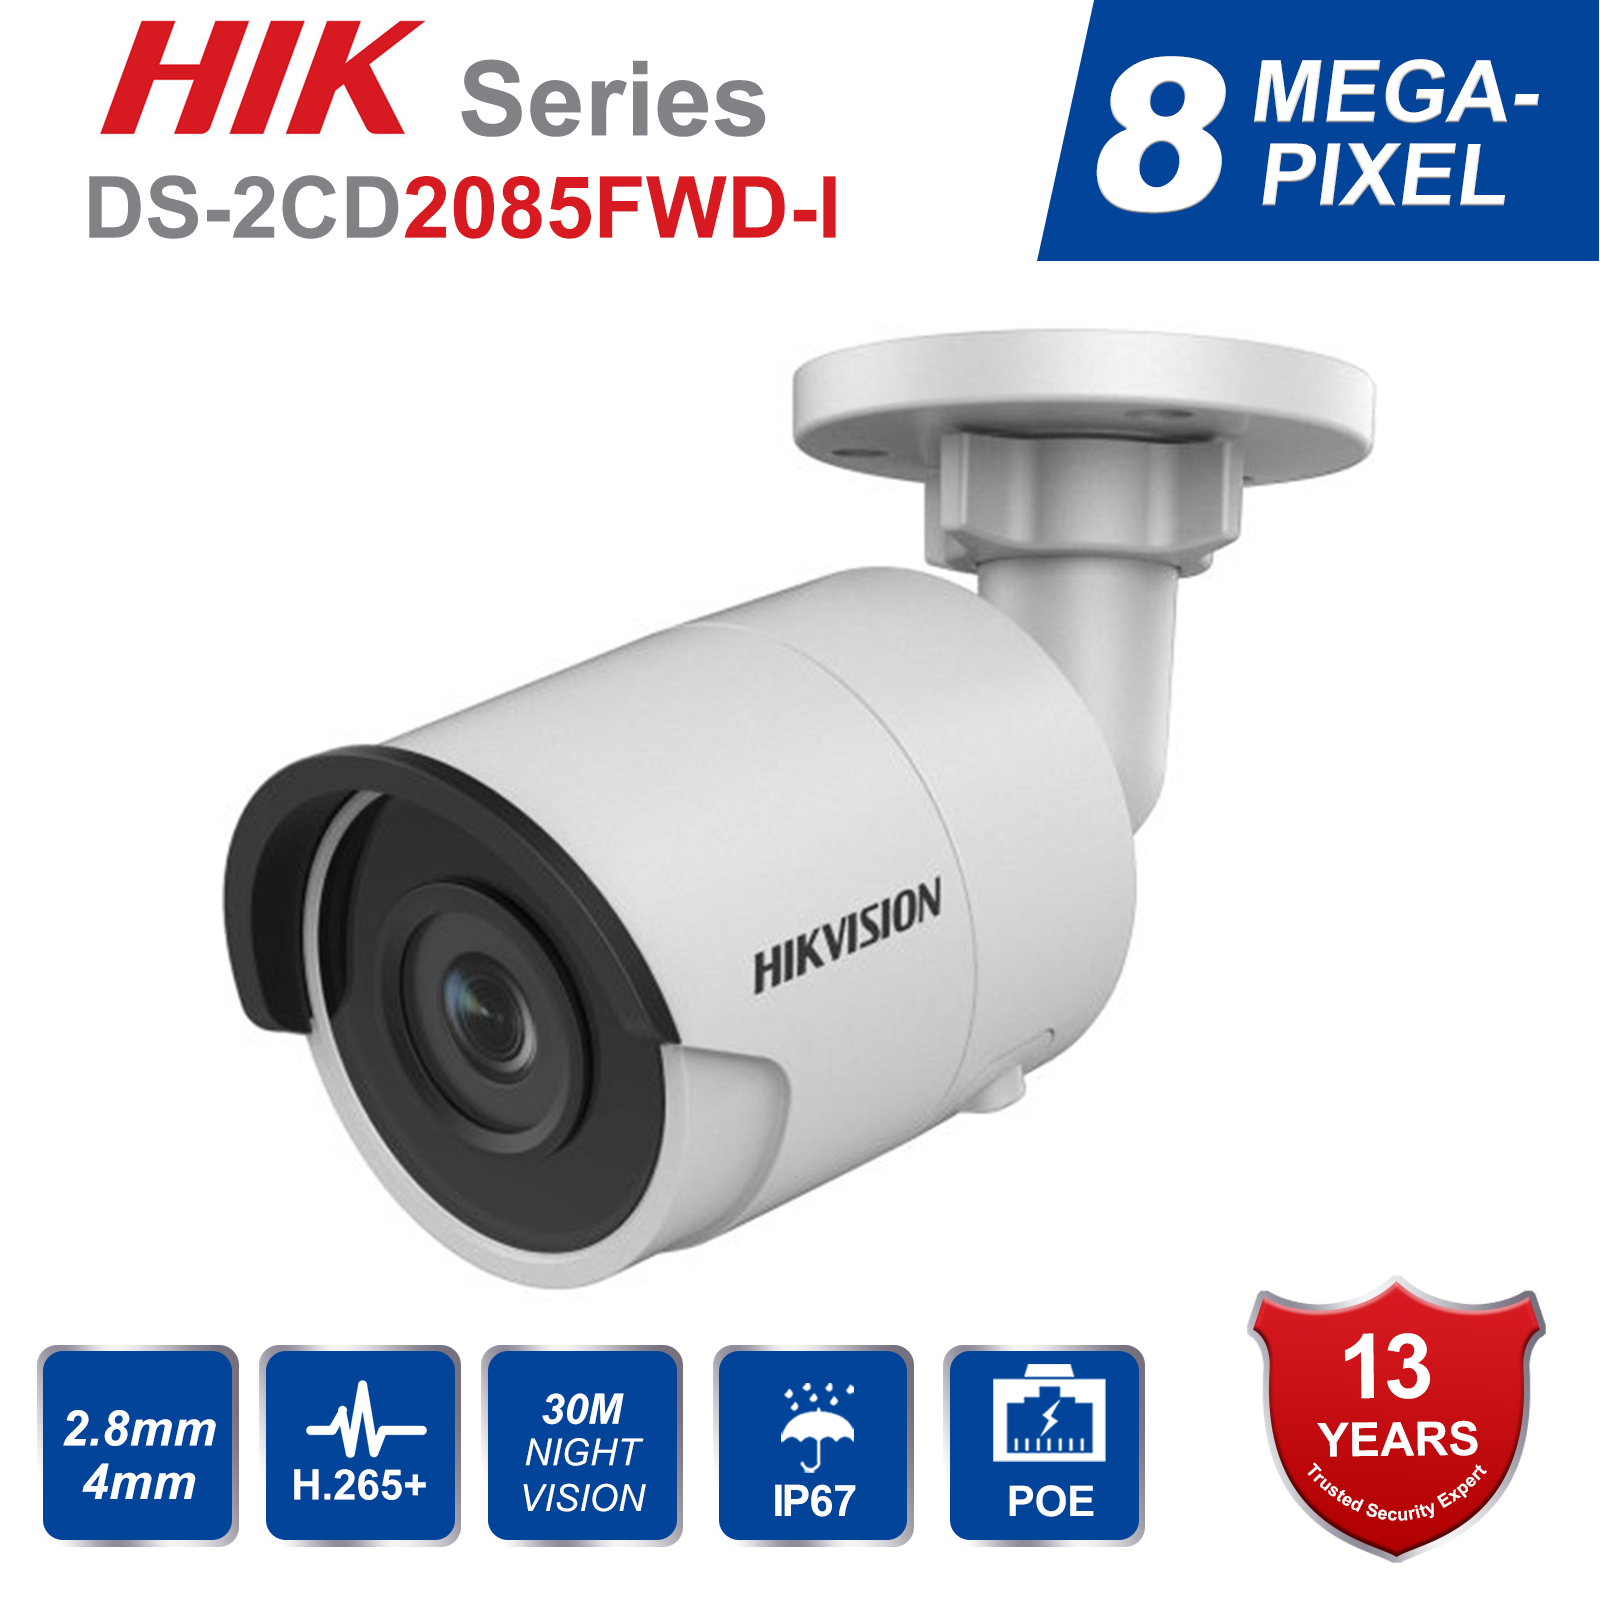 Video Surveillance Hik 8mp Cctv Camera Updateable Ds-2cd2085fwd-i Ip Camera High Resoultion Wdr Poe Bullet Security Camera With Sd Card Slot